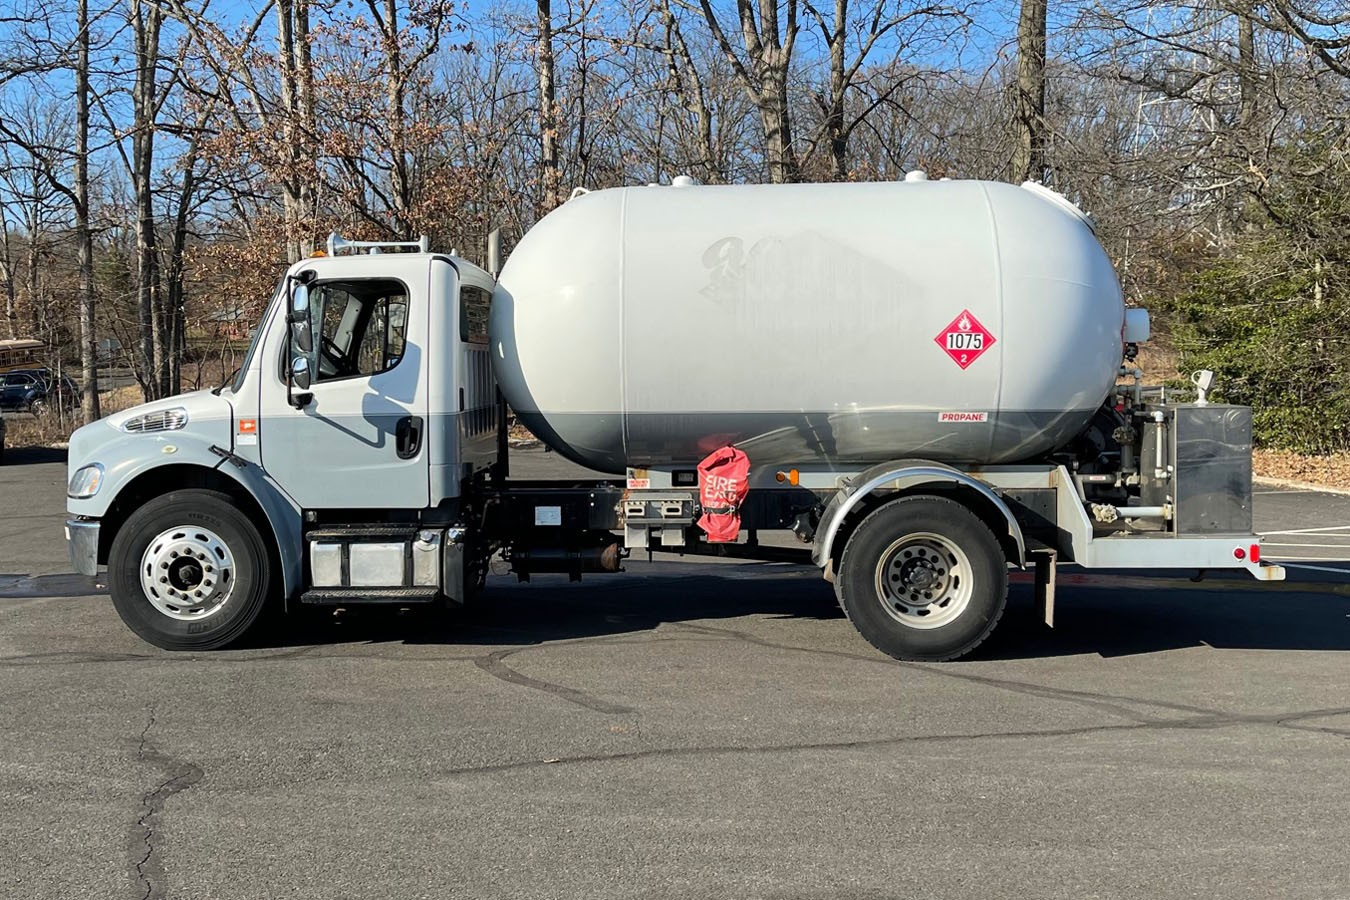 Used, 2011, Other, FREIGHTLINER M2-106 W/ 1972 TRINITY STEEL: 3000 GAL PROPANE TRUCK, Other